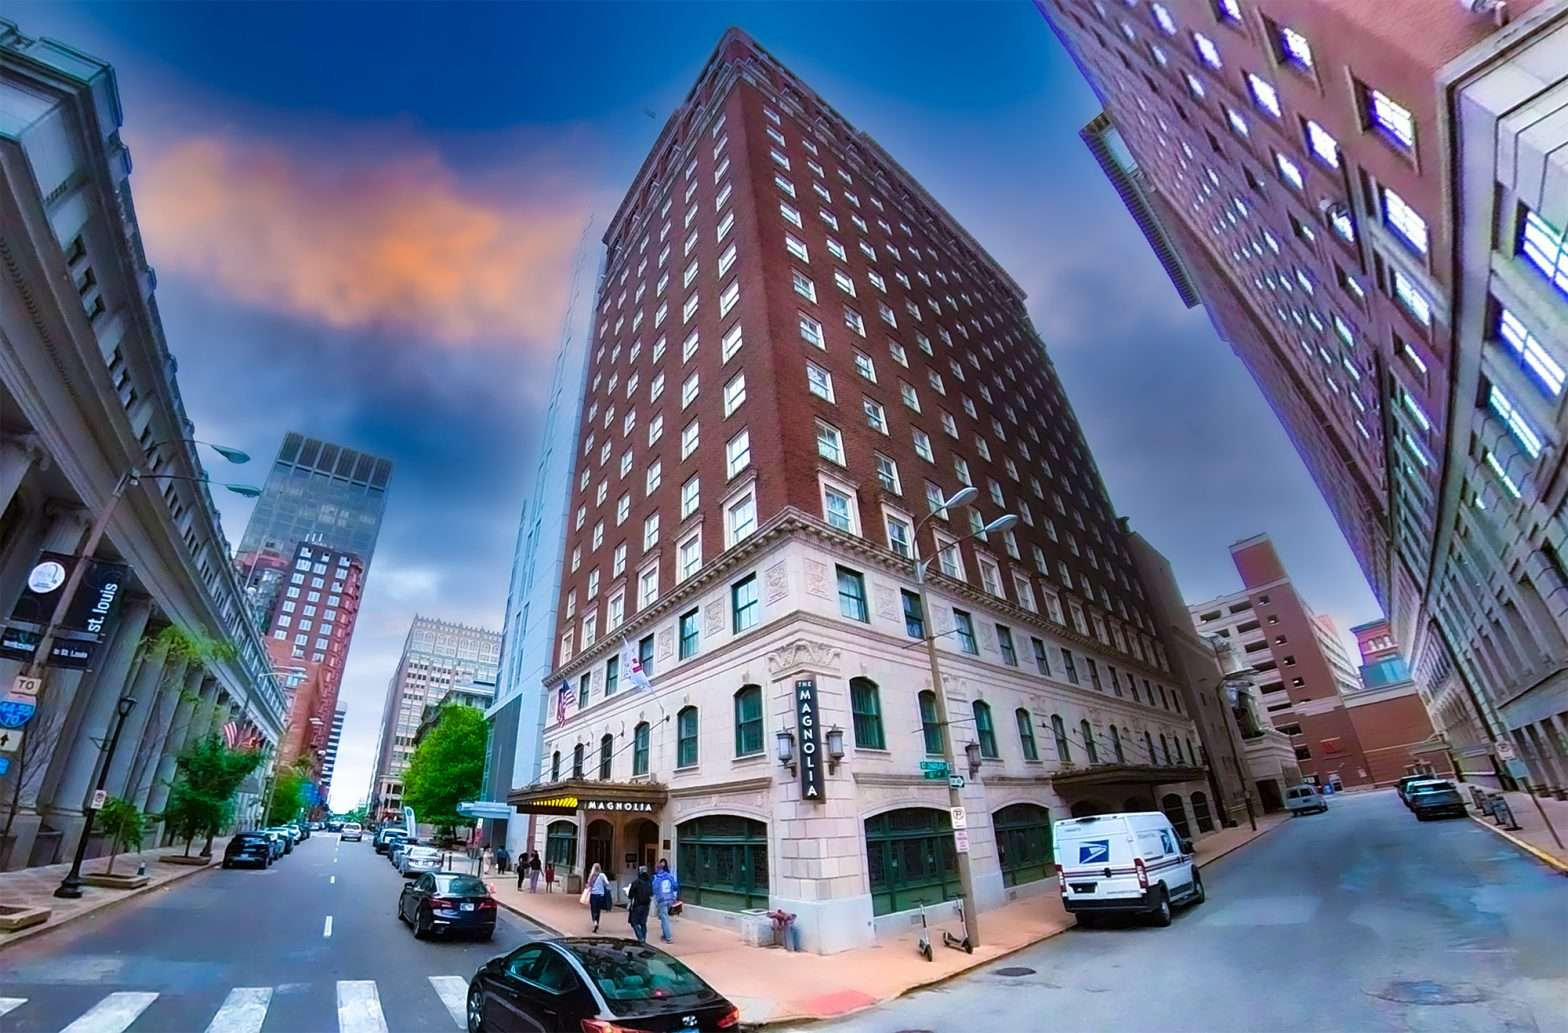 The Magnolia Hotel in the City of St. Louis. by craig currie